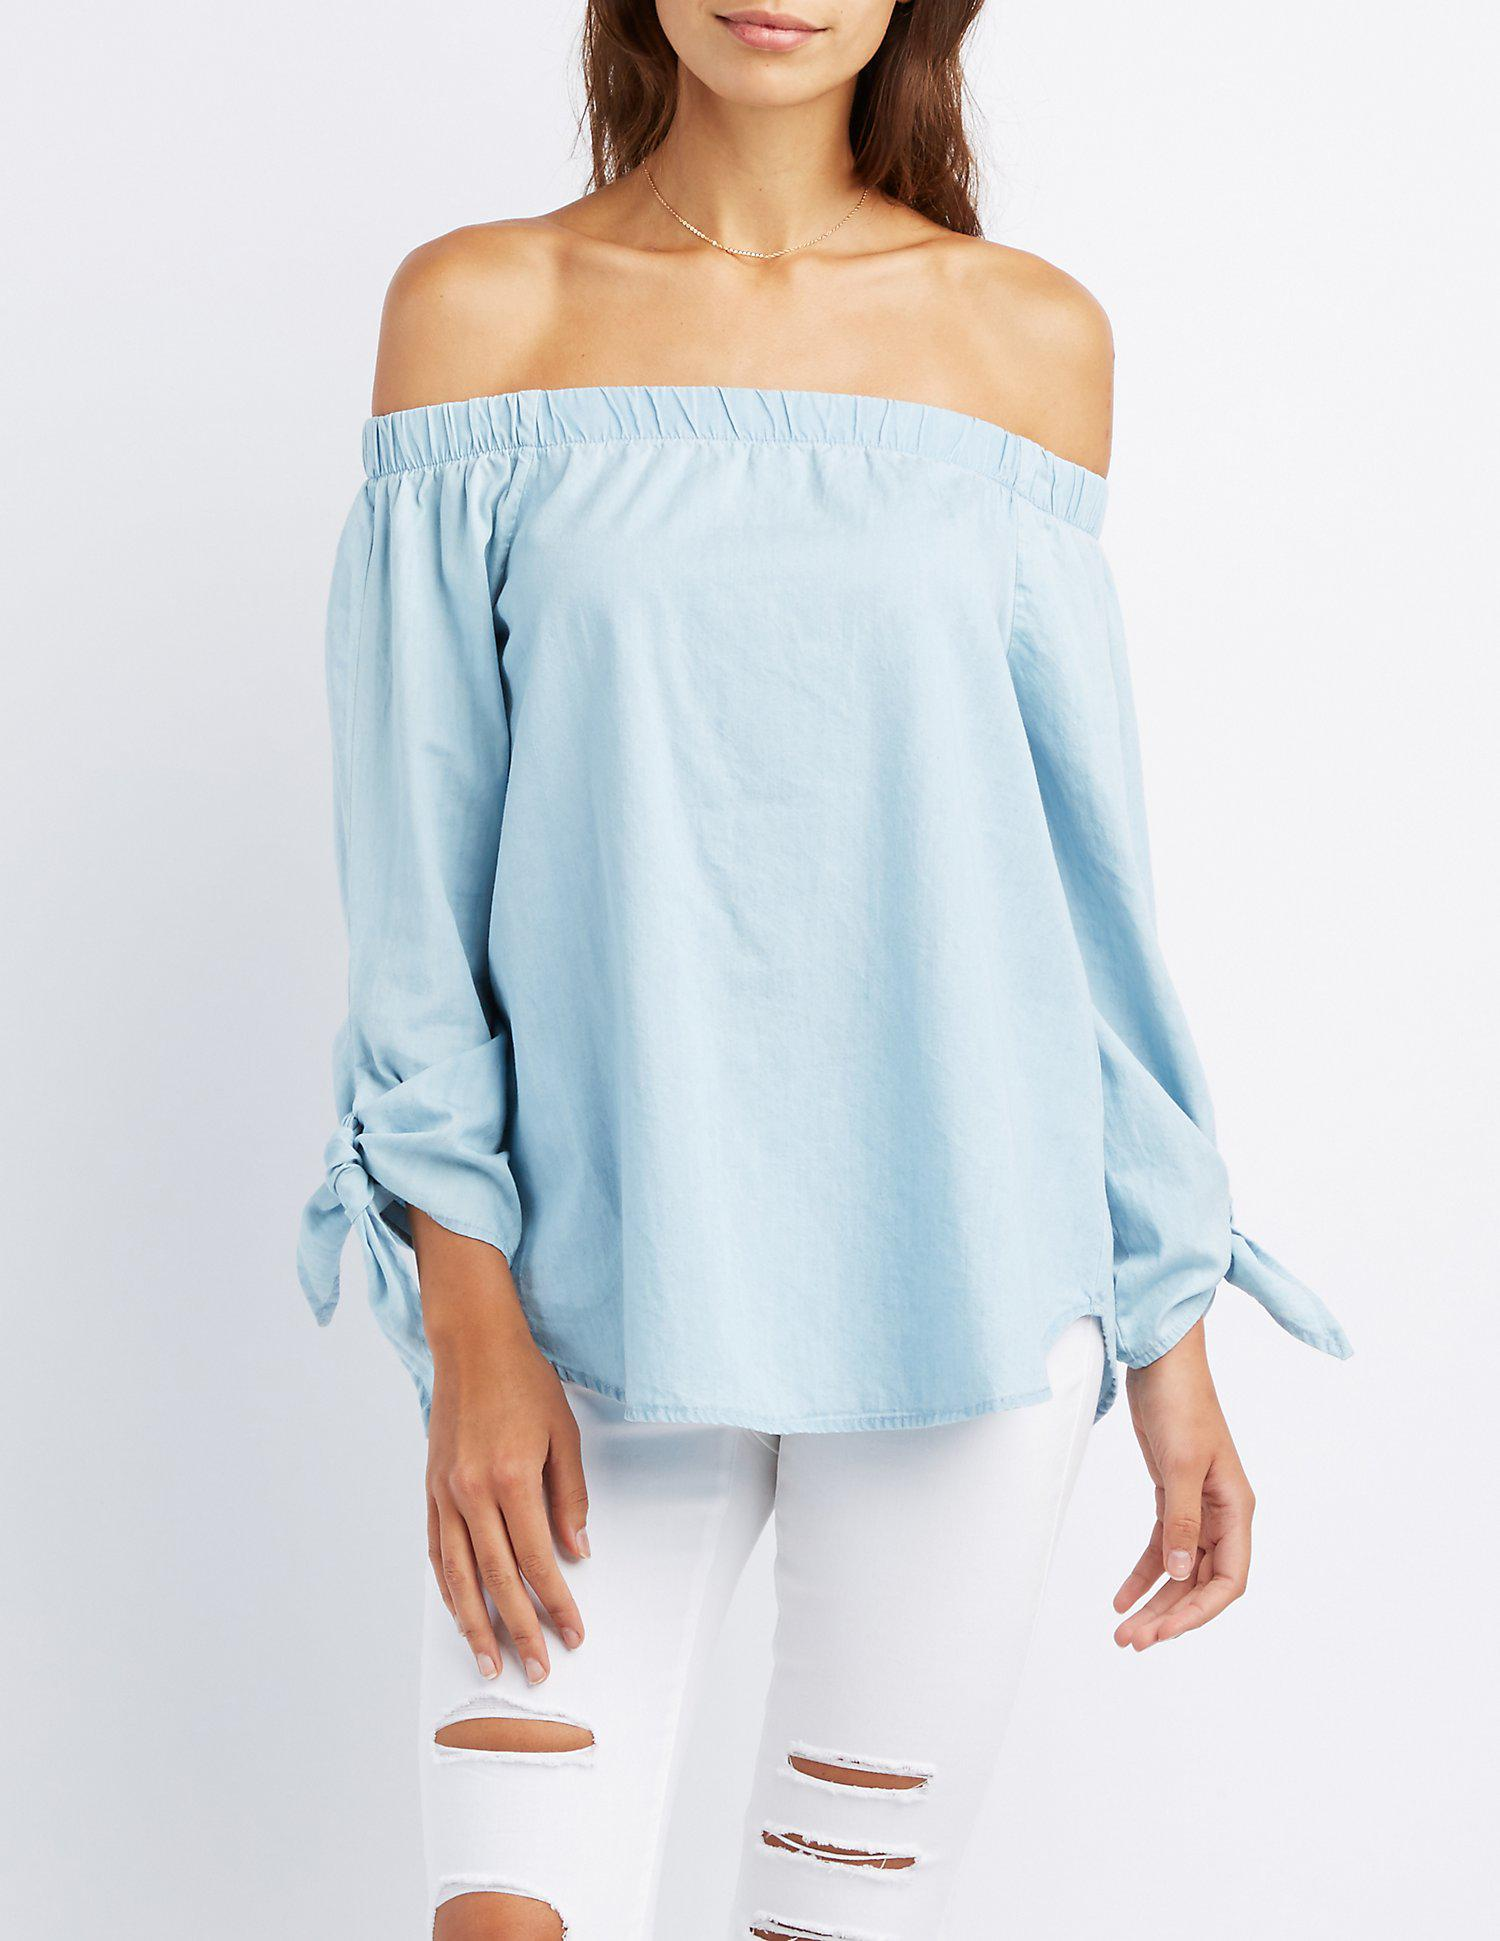 4a415dd0dfa7d4 Lyst - Charlotte Russe Chambray Off-the-shoulder Tie Sleeve Top in Blue